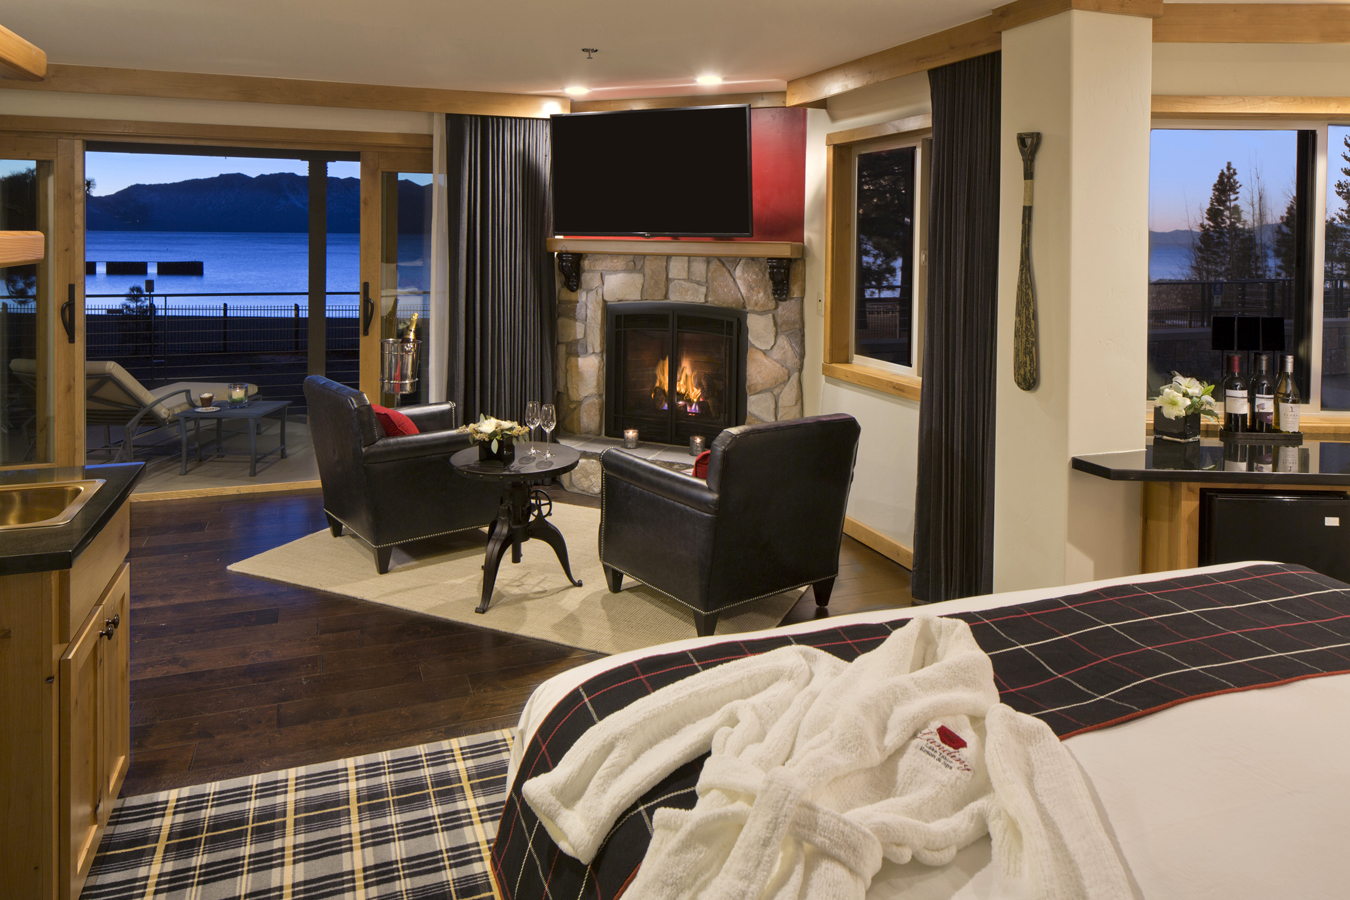 The landing resort spa on lake tahoe offers special for Luxury spa weekends for couples